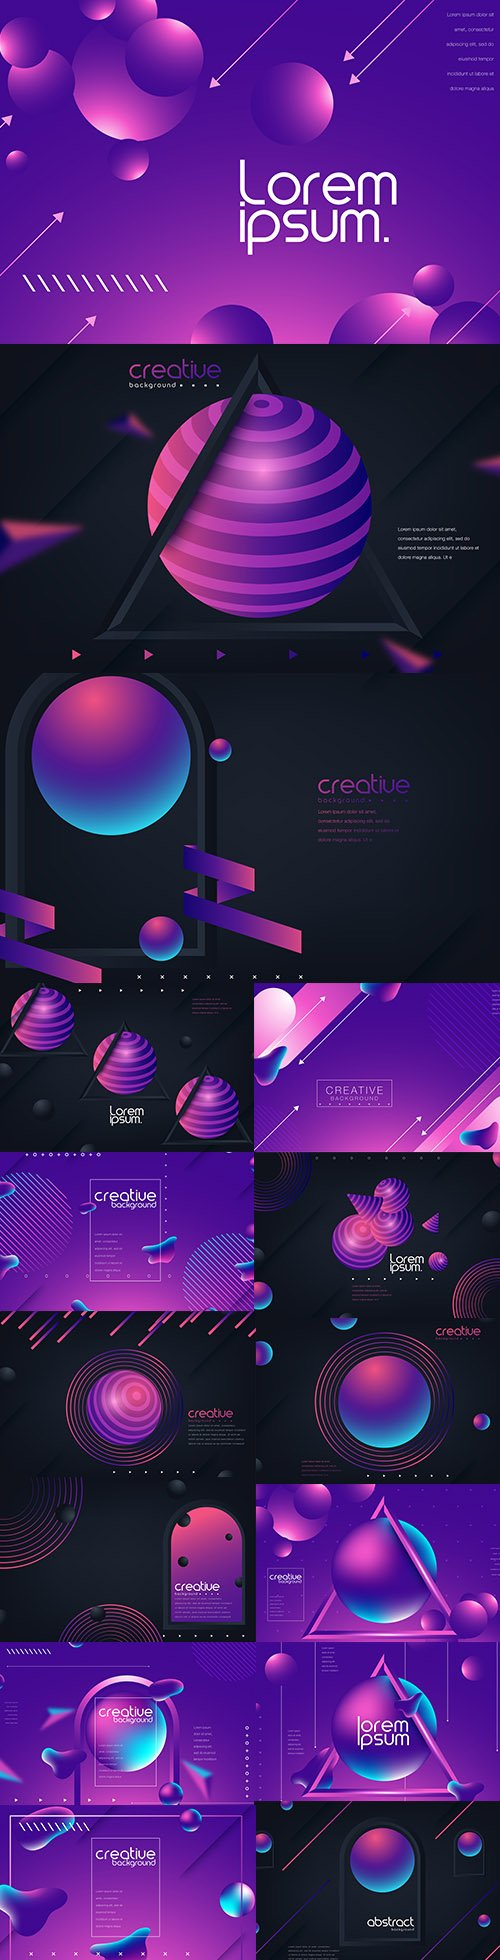 Trendy Bright Gradient Colors with Abstract Fluid Shapes